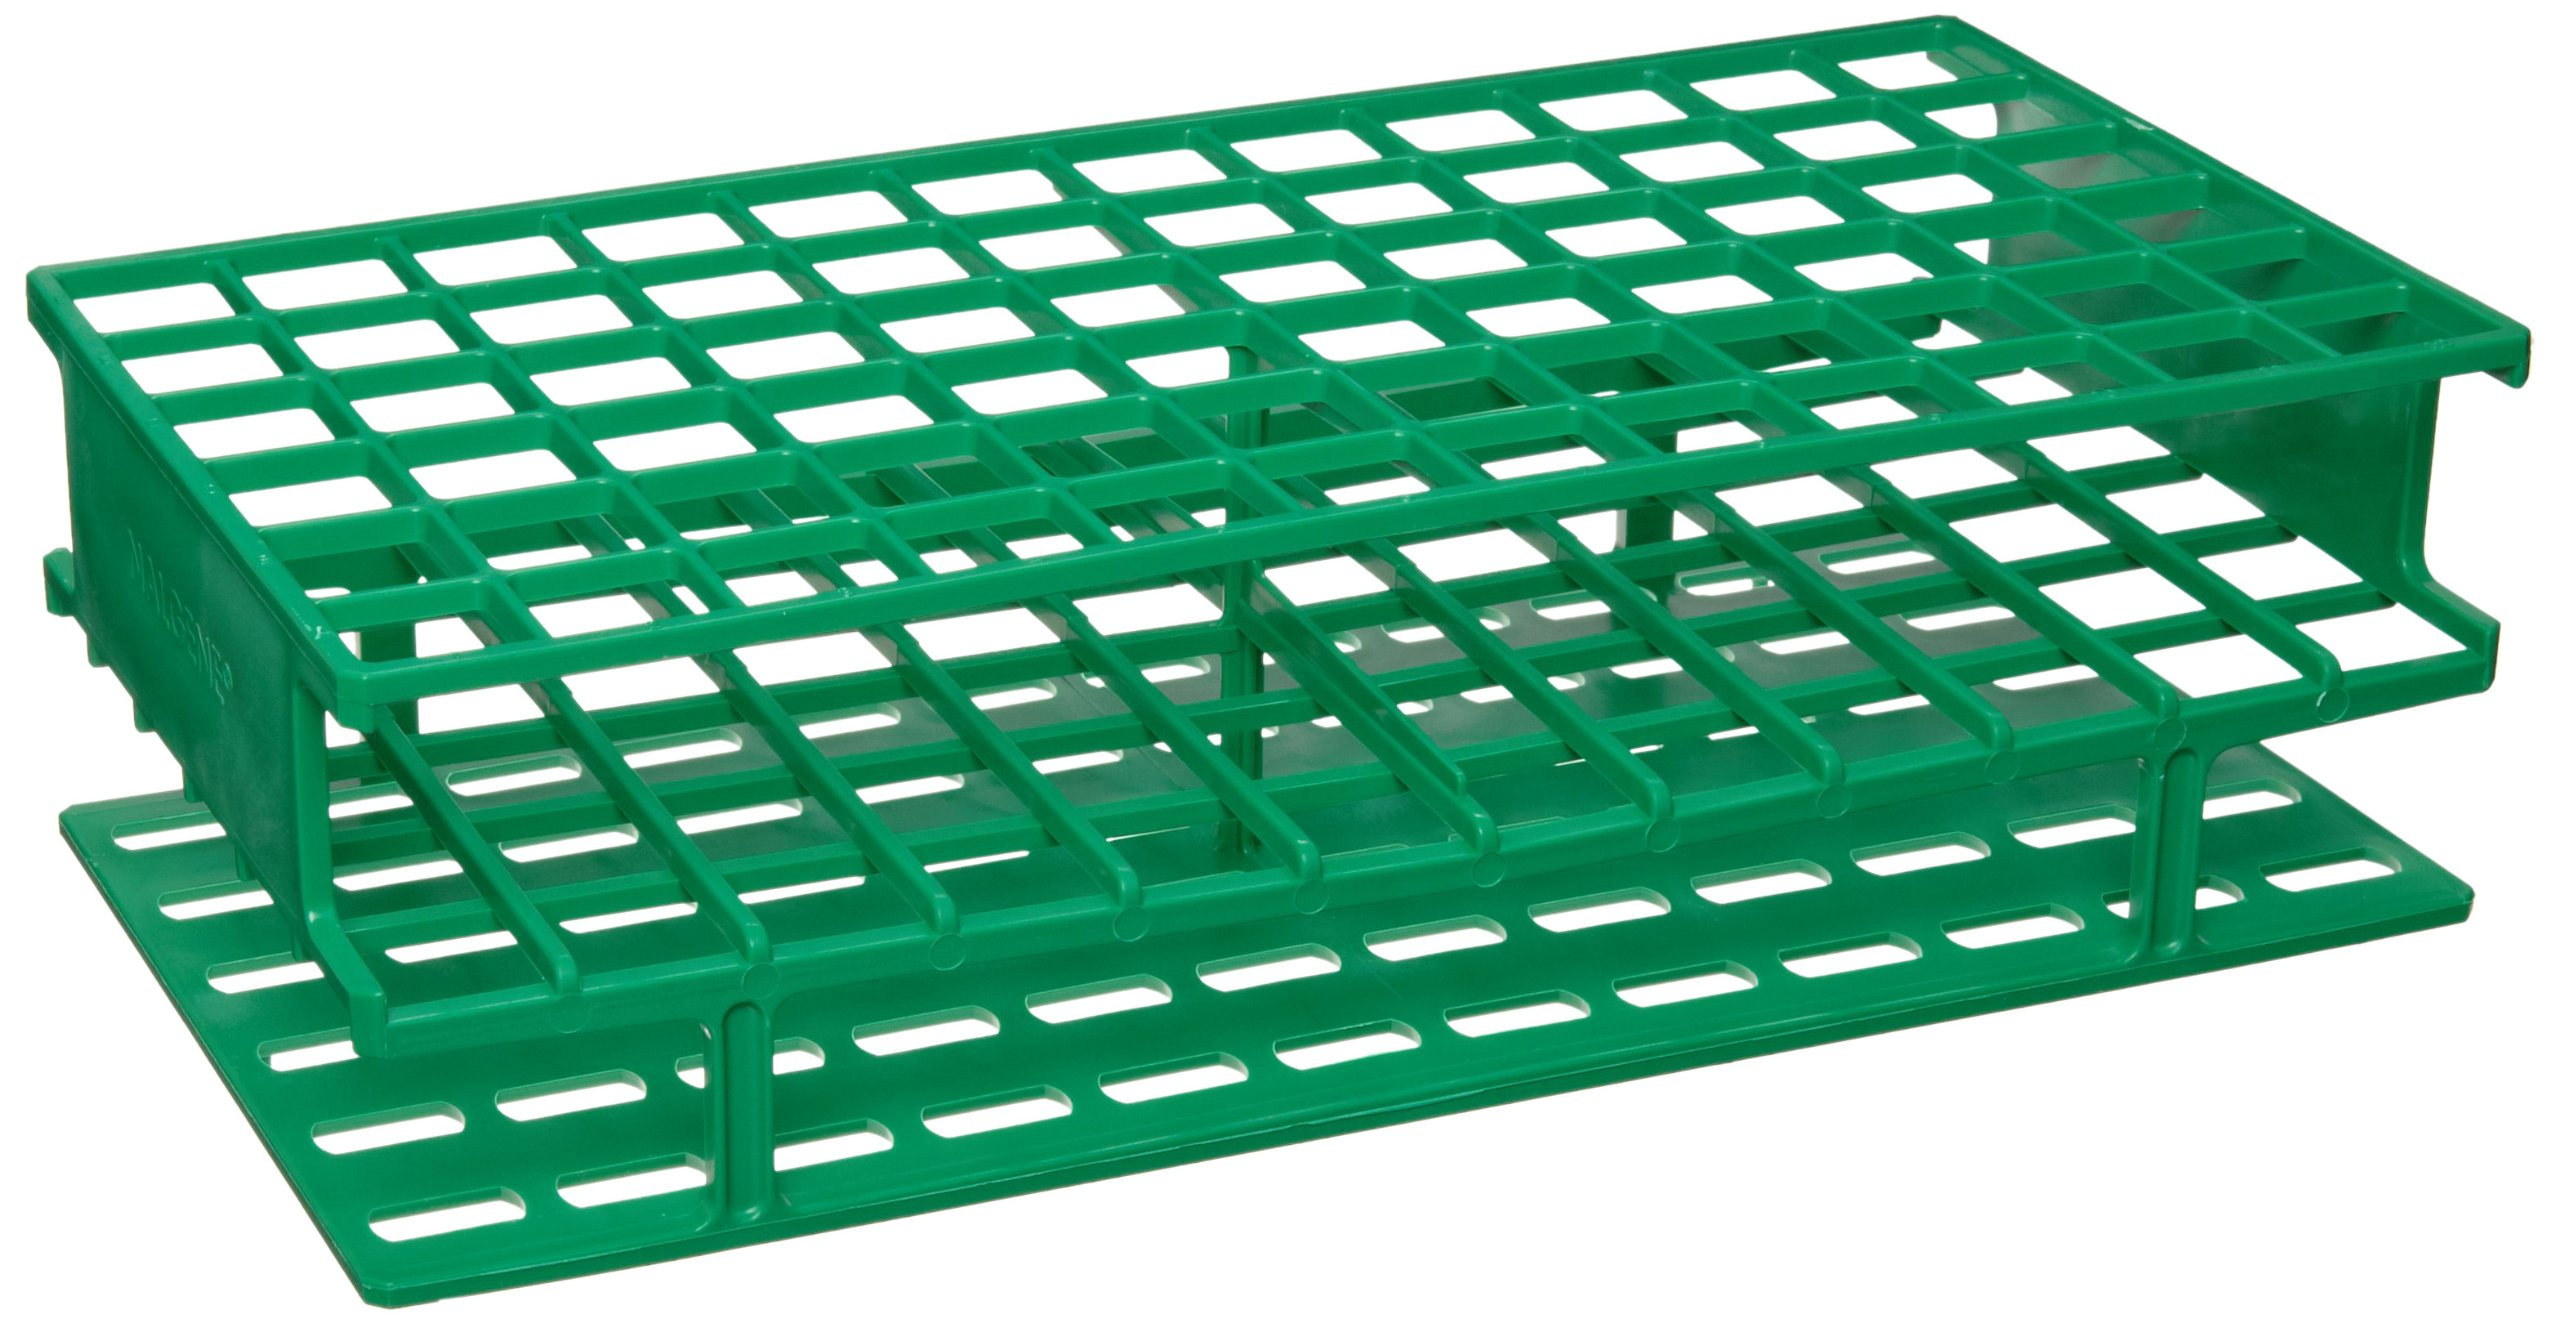 Nalgene 5976-0416 Polypropylene Unwire Test Tube Rack for 16mm Test Tubes, Green